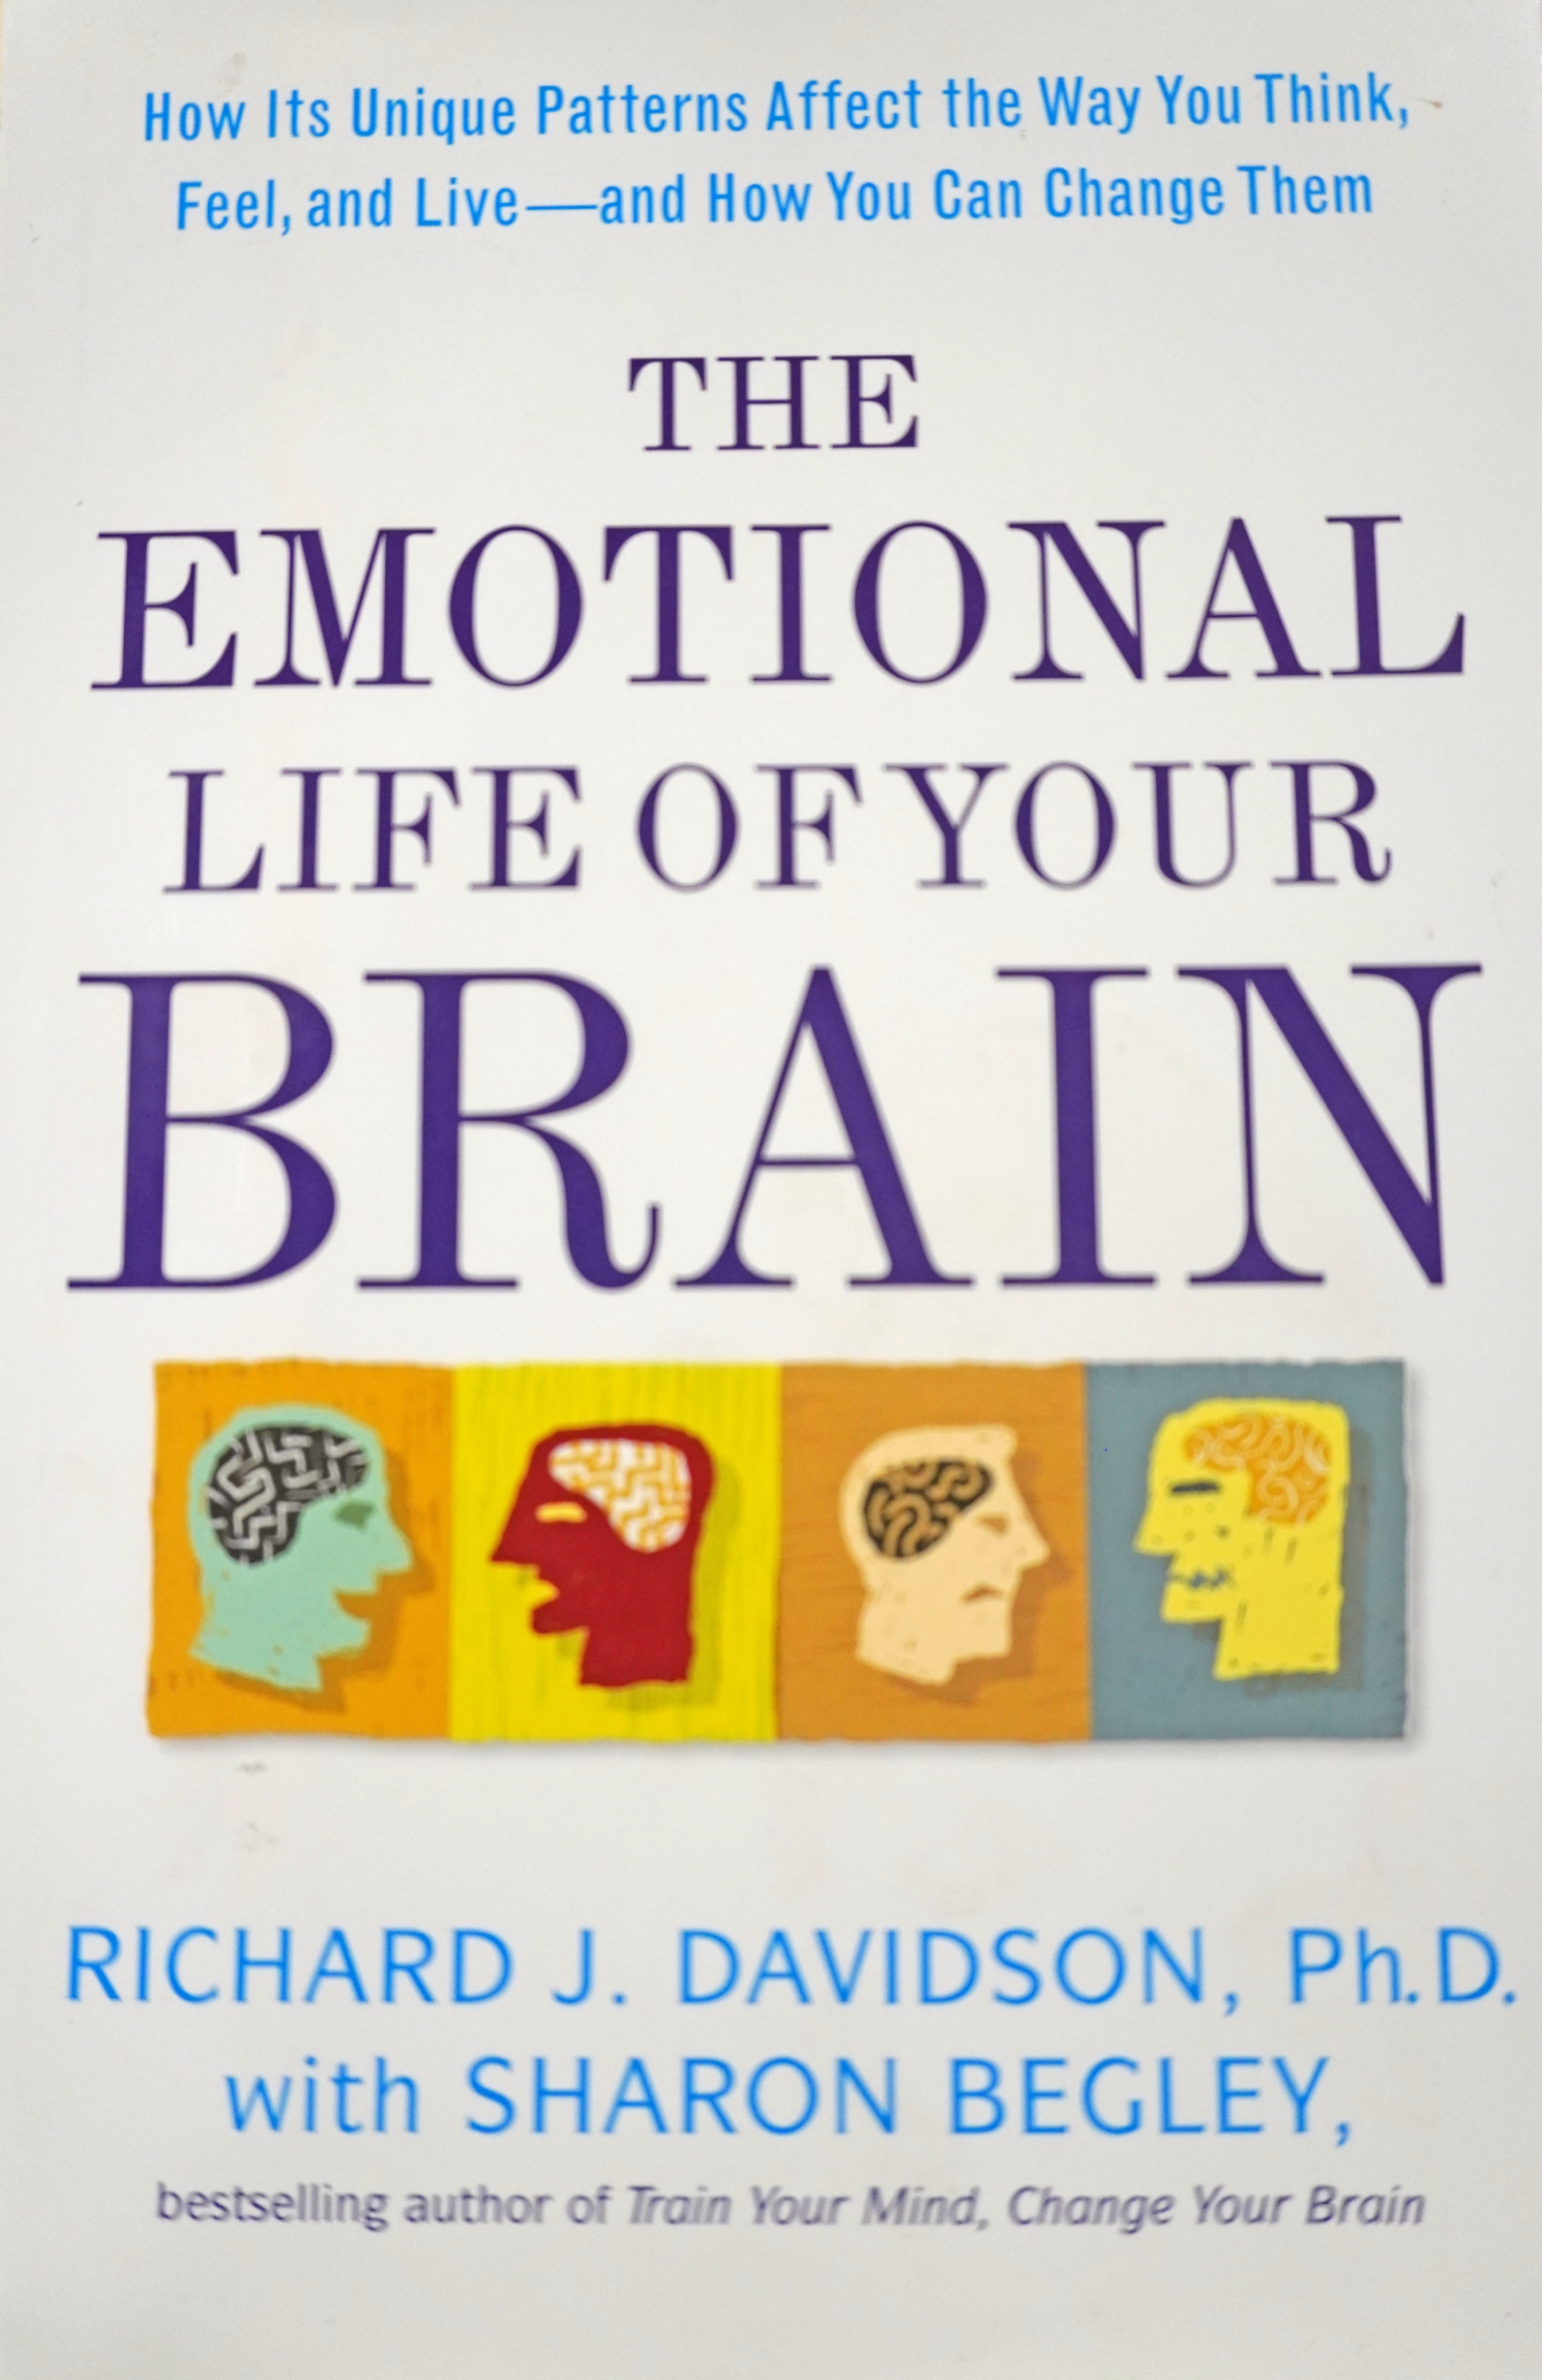 The Emotional Life of your Brain - Richard Davidson w/ Sharon Begley